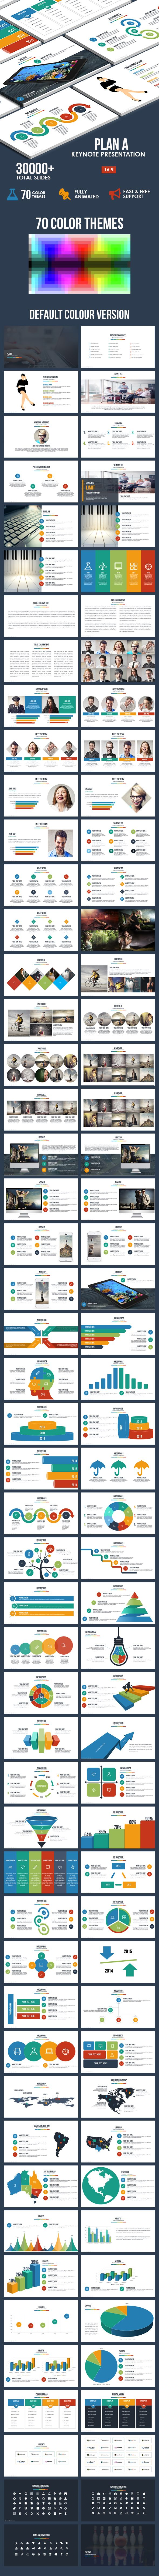 Plan a keynote template ccuart Gallery